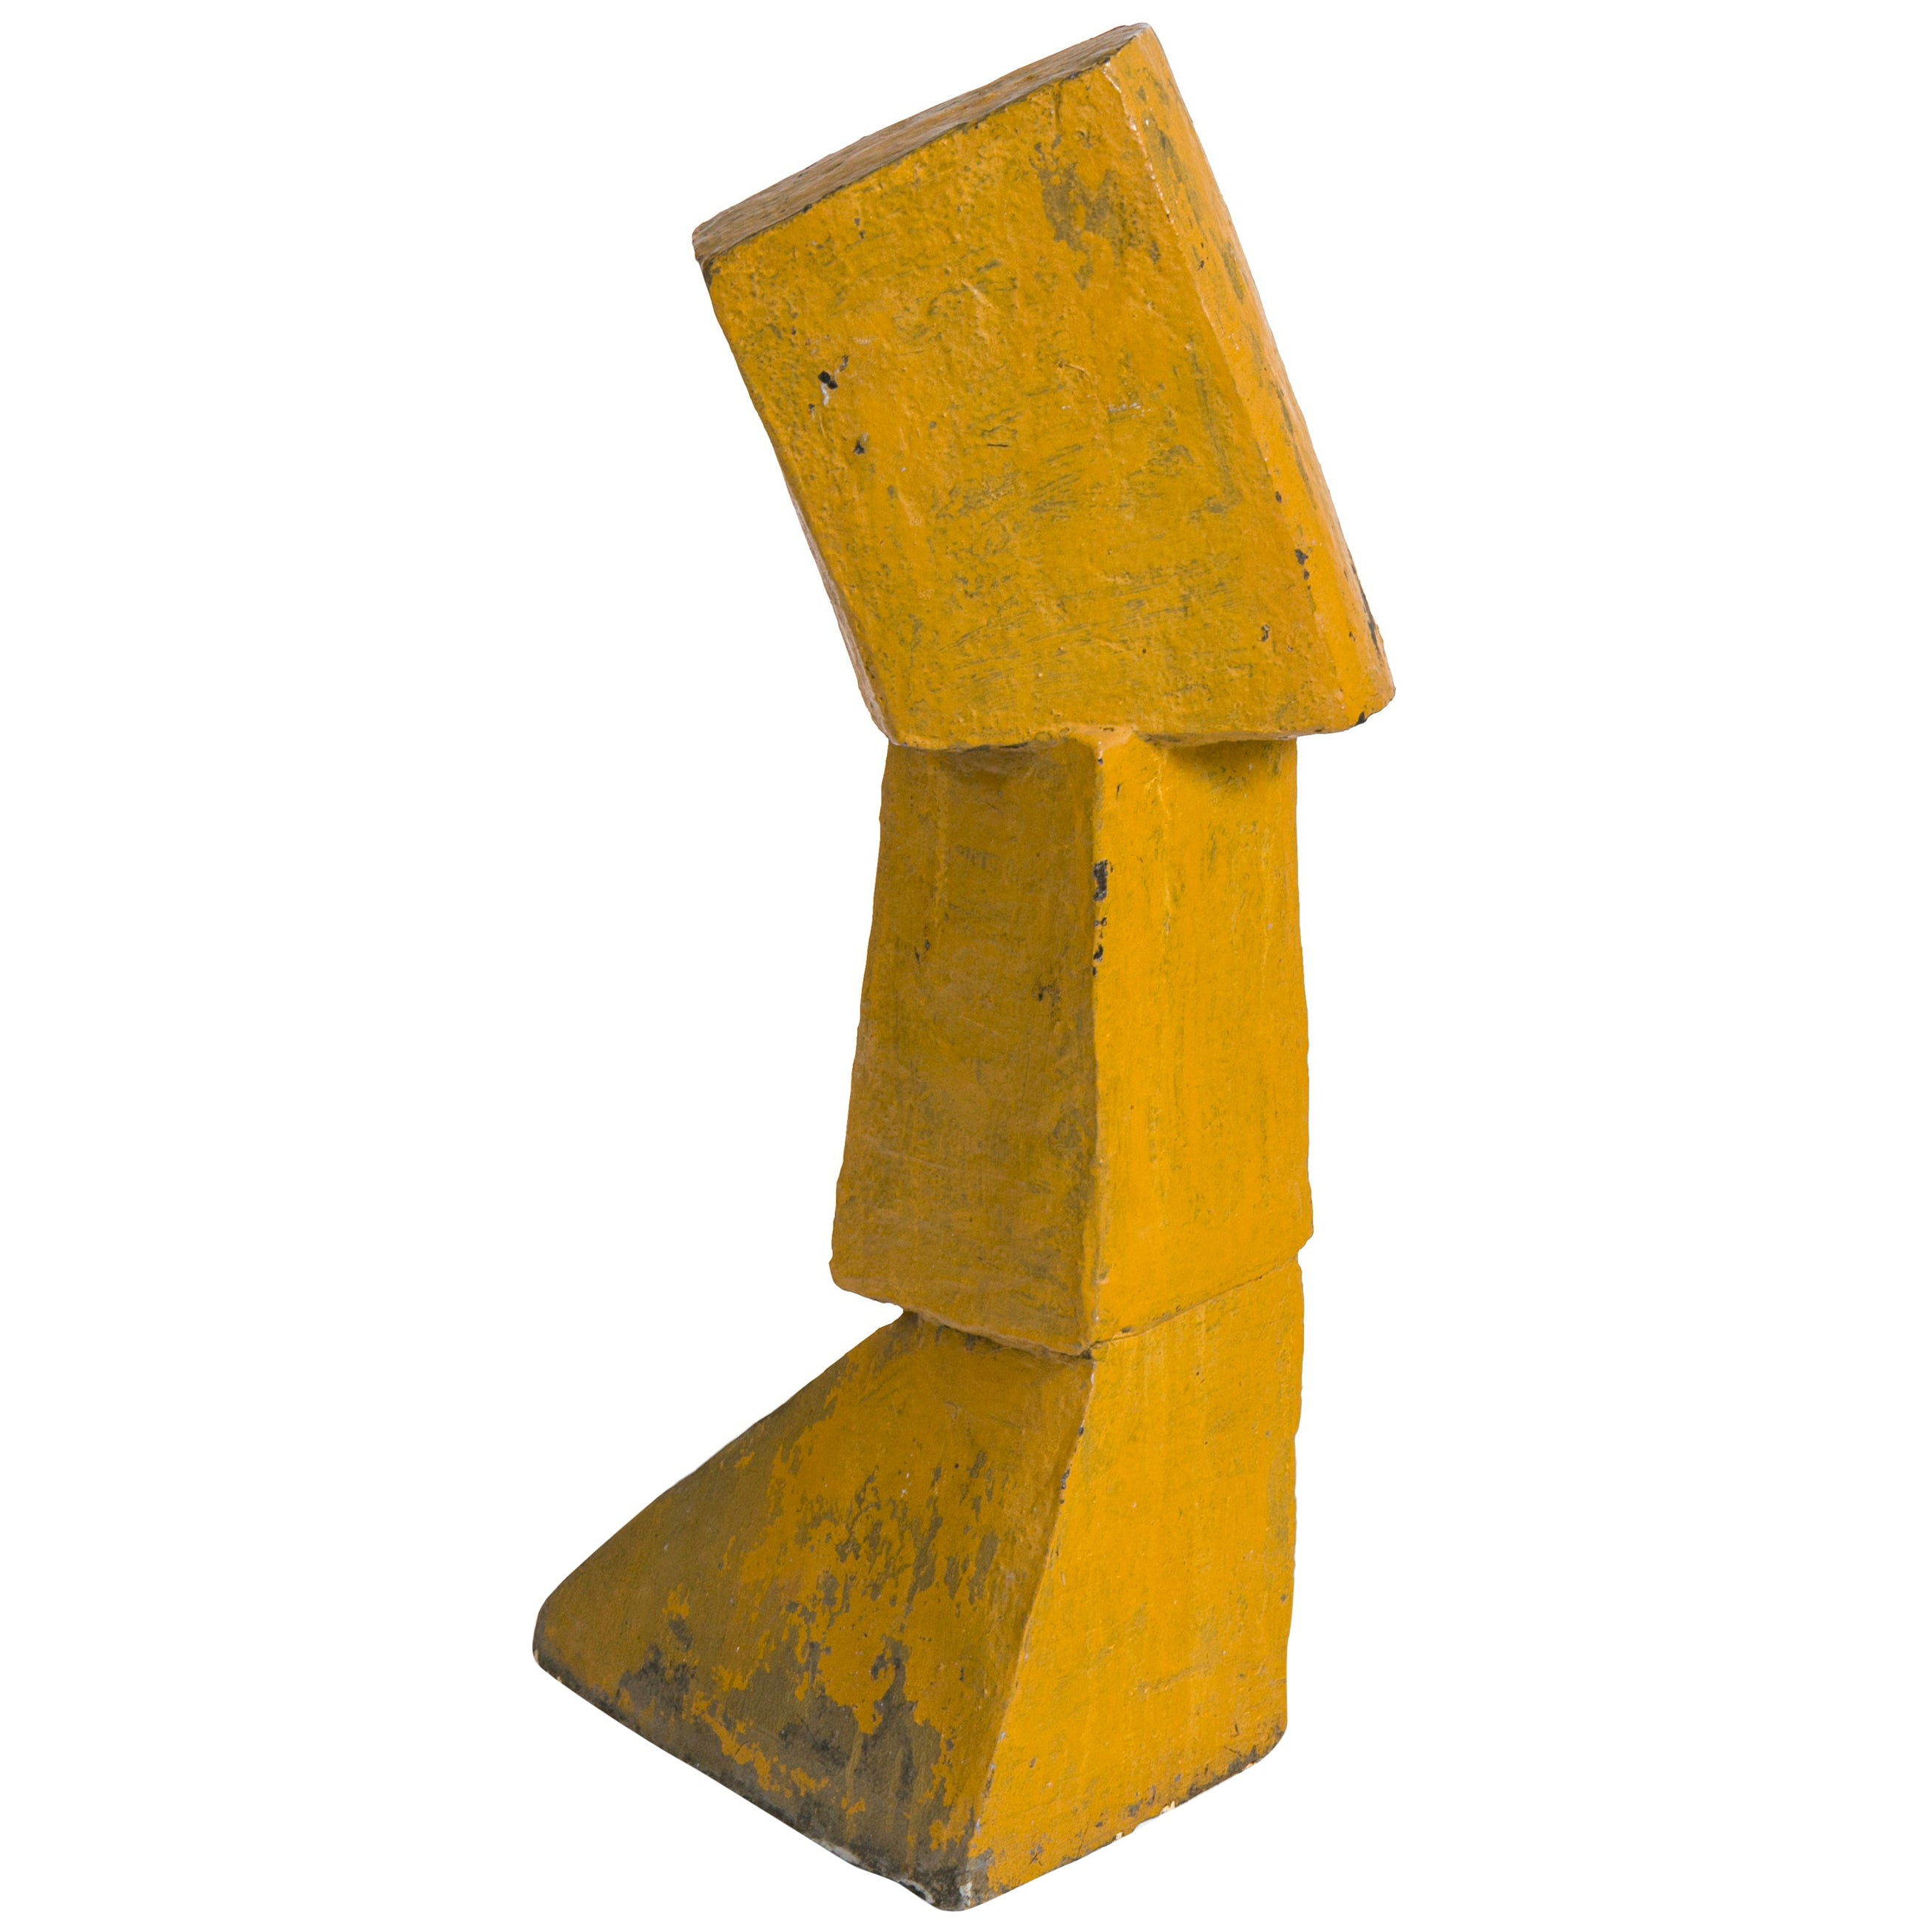 Bent Sorensen Abstract Yellow Ceramic Sculpture, Denmark 1970s